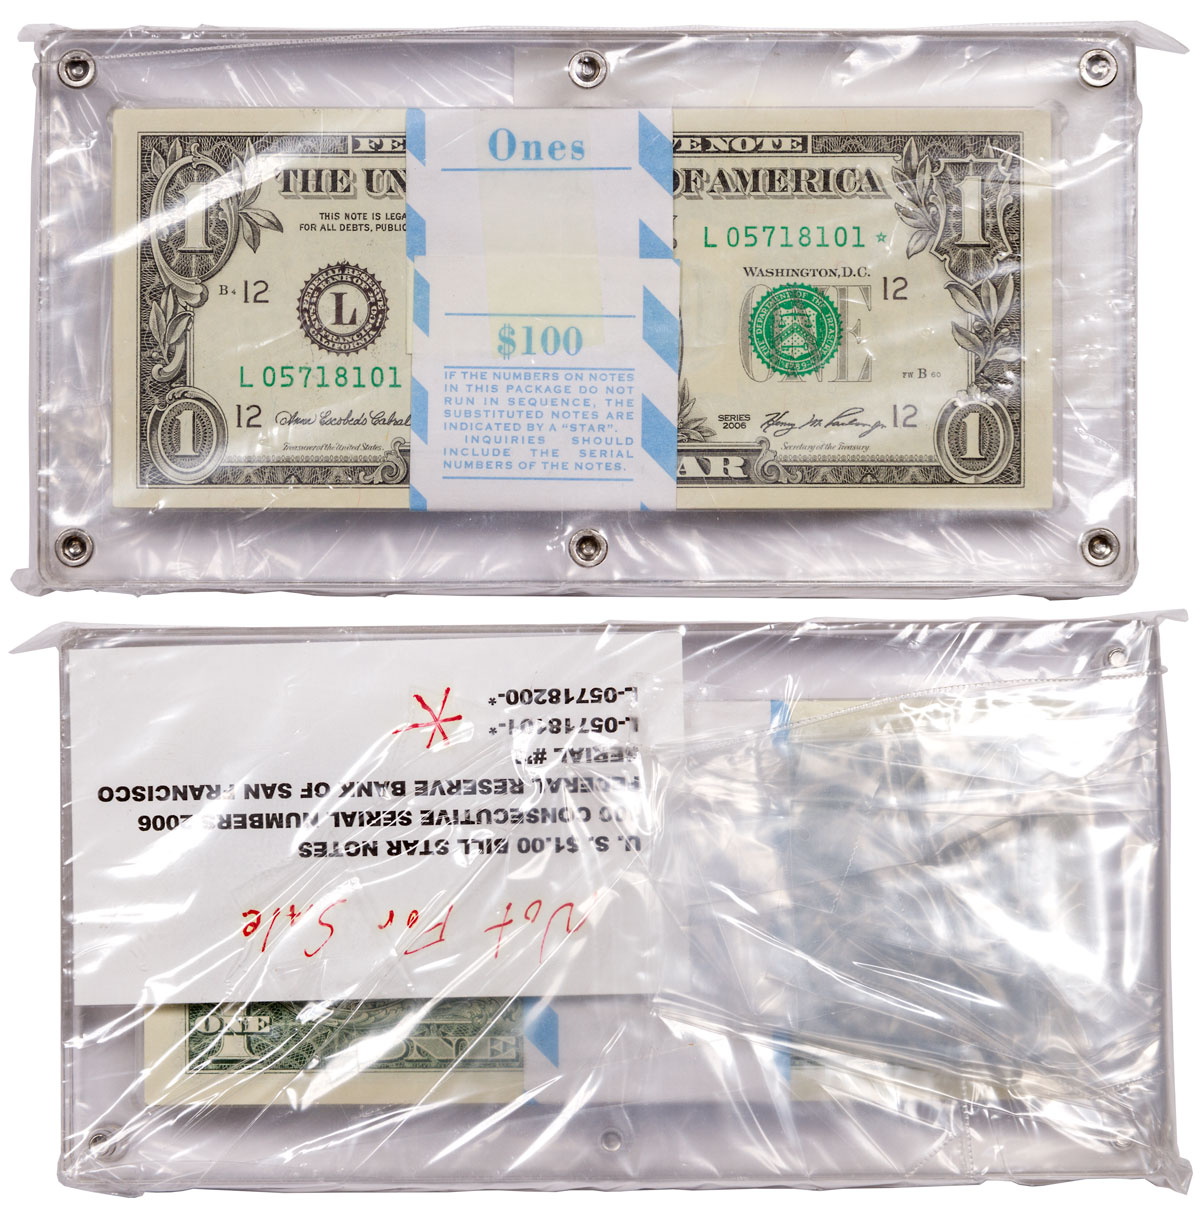 Set of 100 - 2006 $1 United States Bill Star Notes Consecutive Serial Numbers L-05718101-L-05718200 in Sealed Display Block